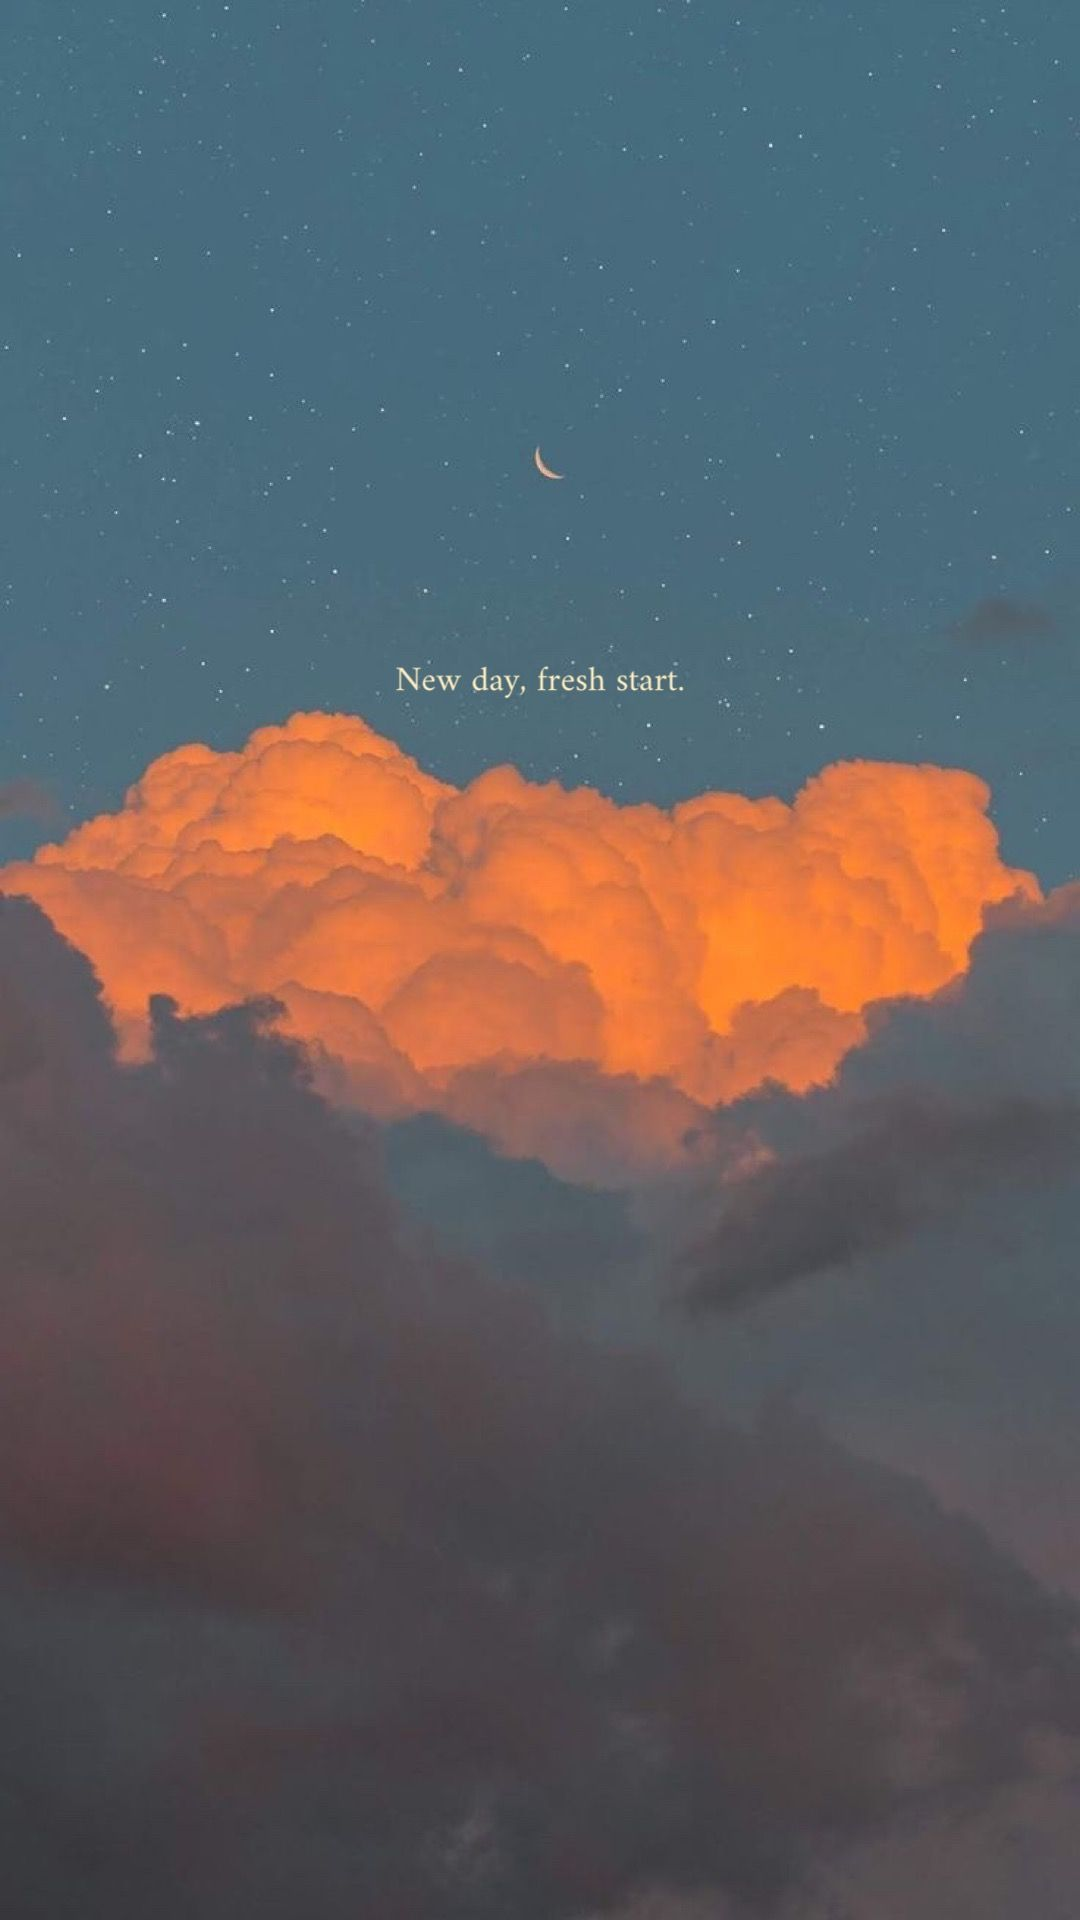 New day, fresh start — Iphone wallpaper quotes sky